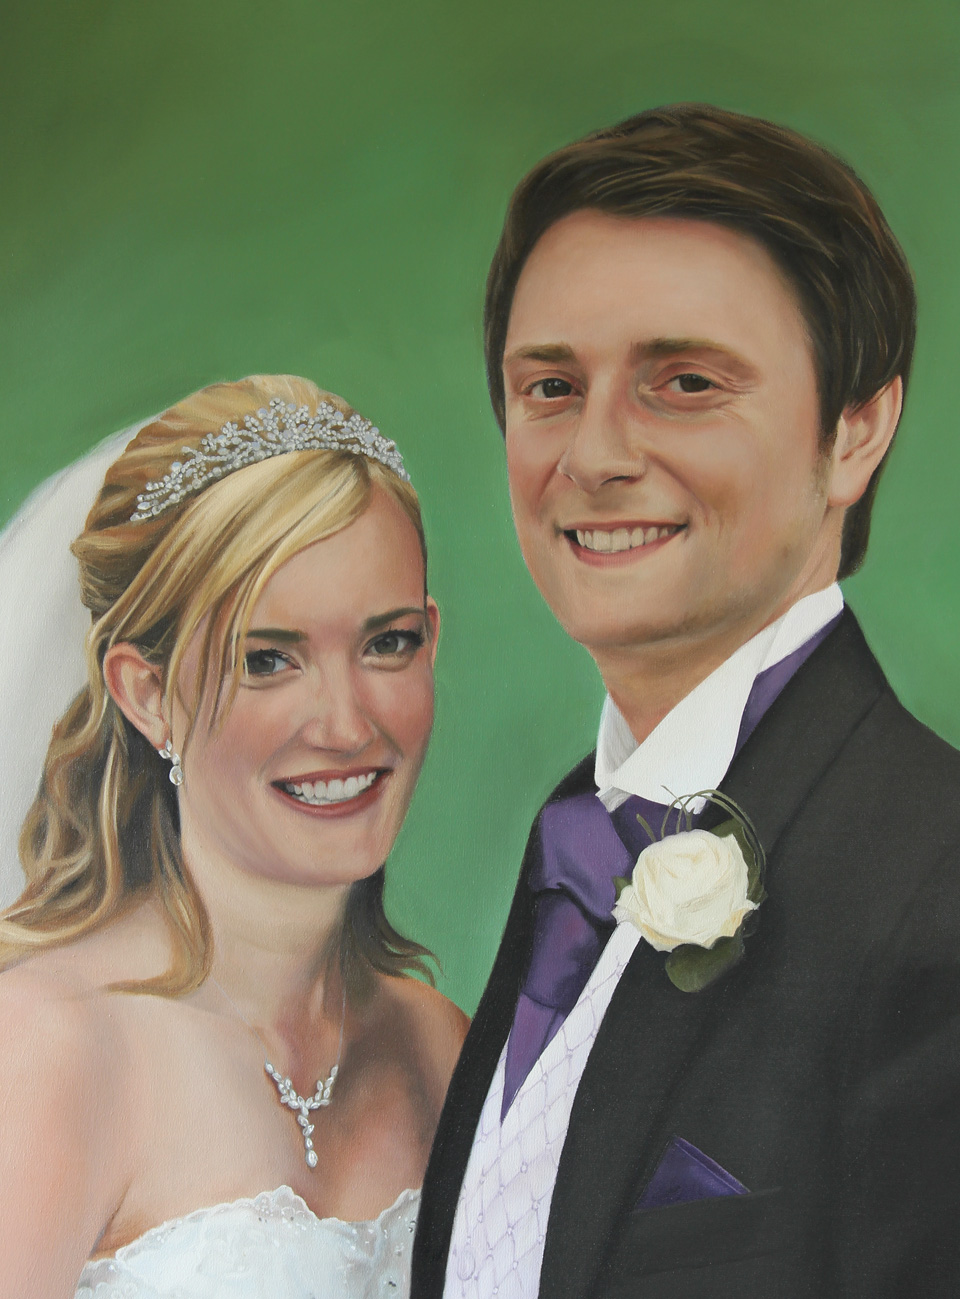 Painting of Bride and Groom